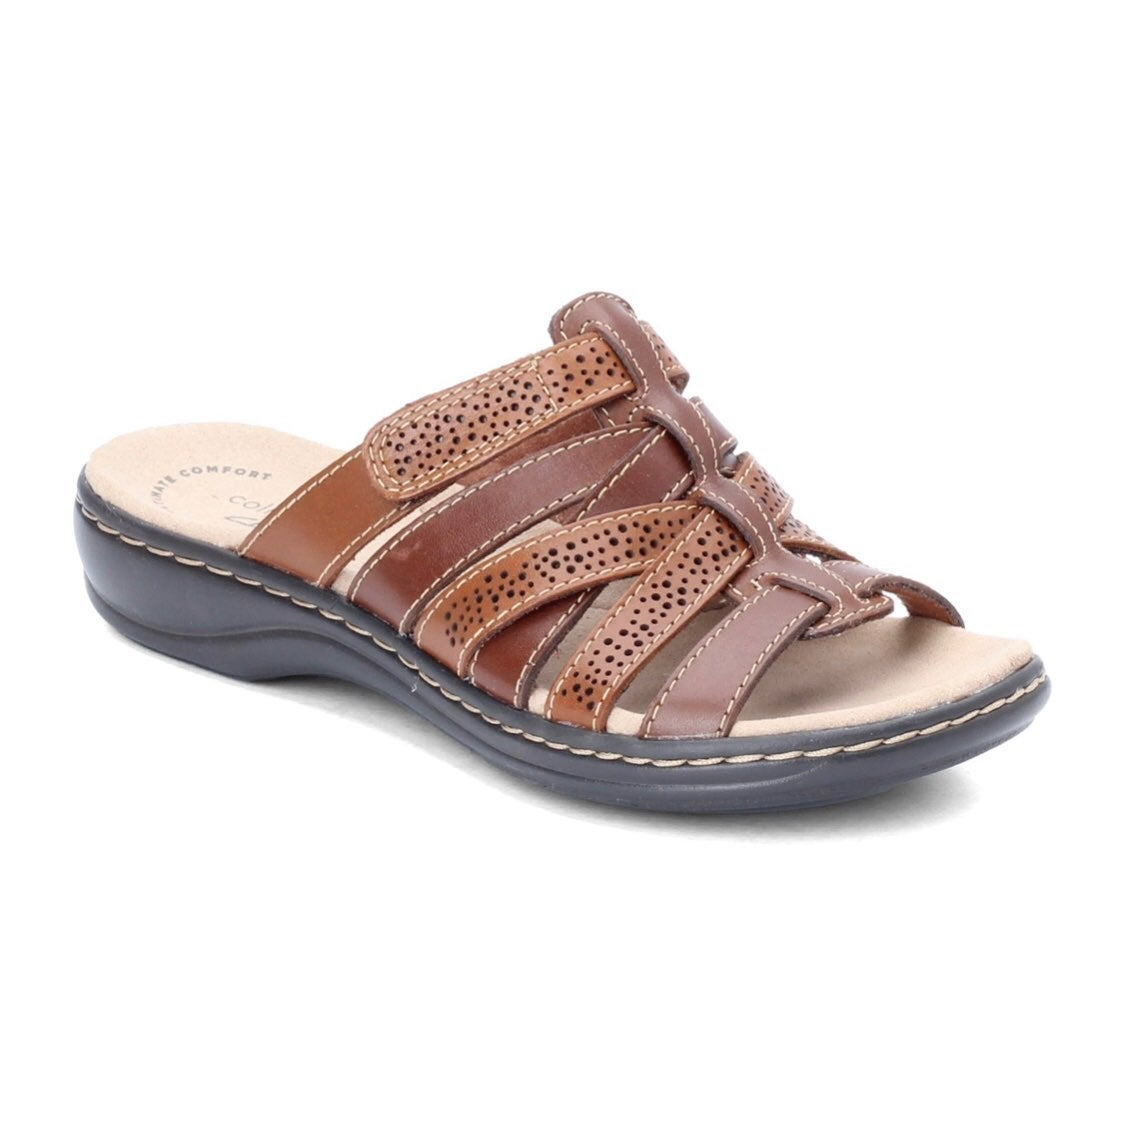 Collection by Clarks Leisa Field Slide